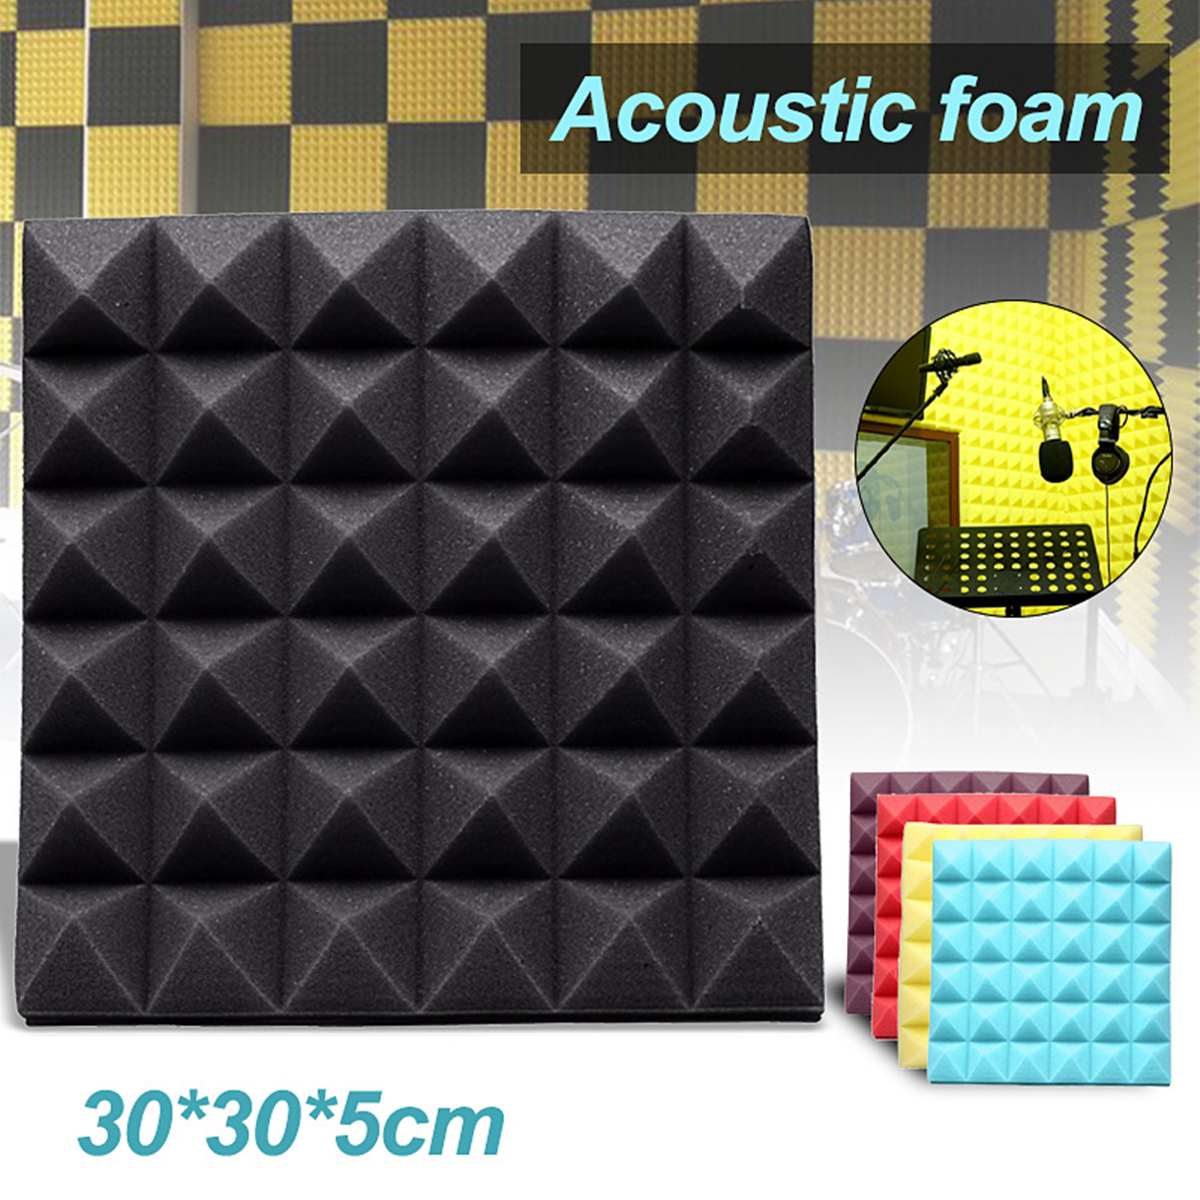 Newest 30*30*5cm Studio Acoustic Soundproof Foam Sound Absorption Treatment Panel Tile Wedge Protective Sponge